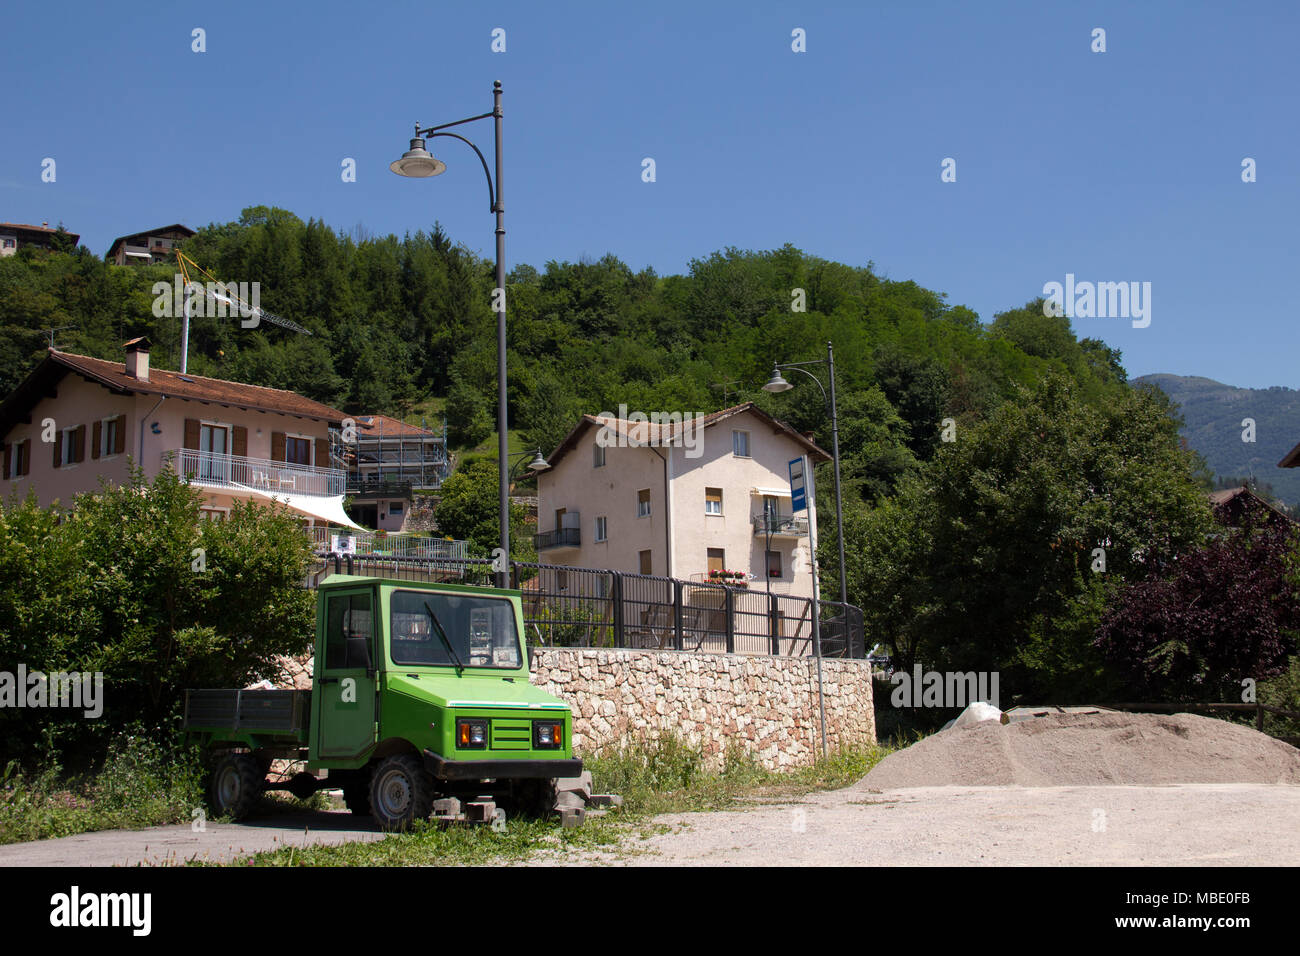 A small green work truck parked in San Lorenzo, Italy Stock Photo